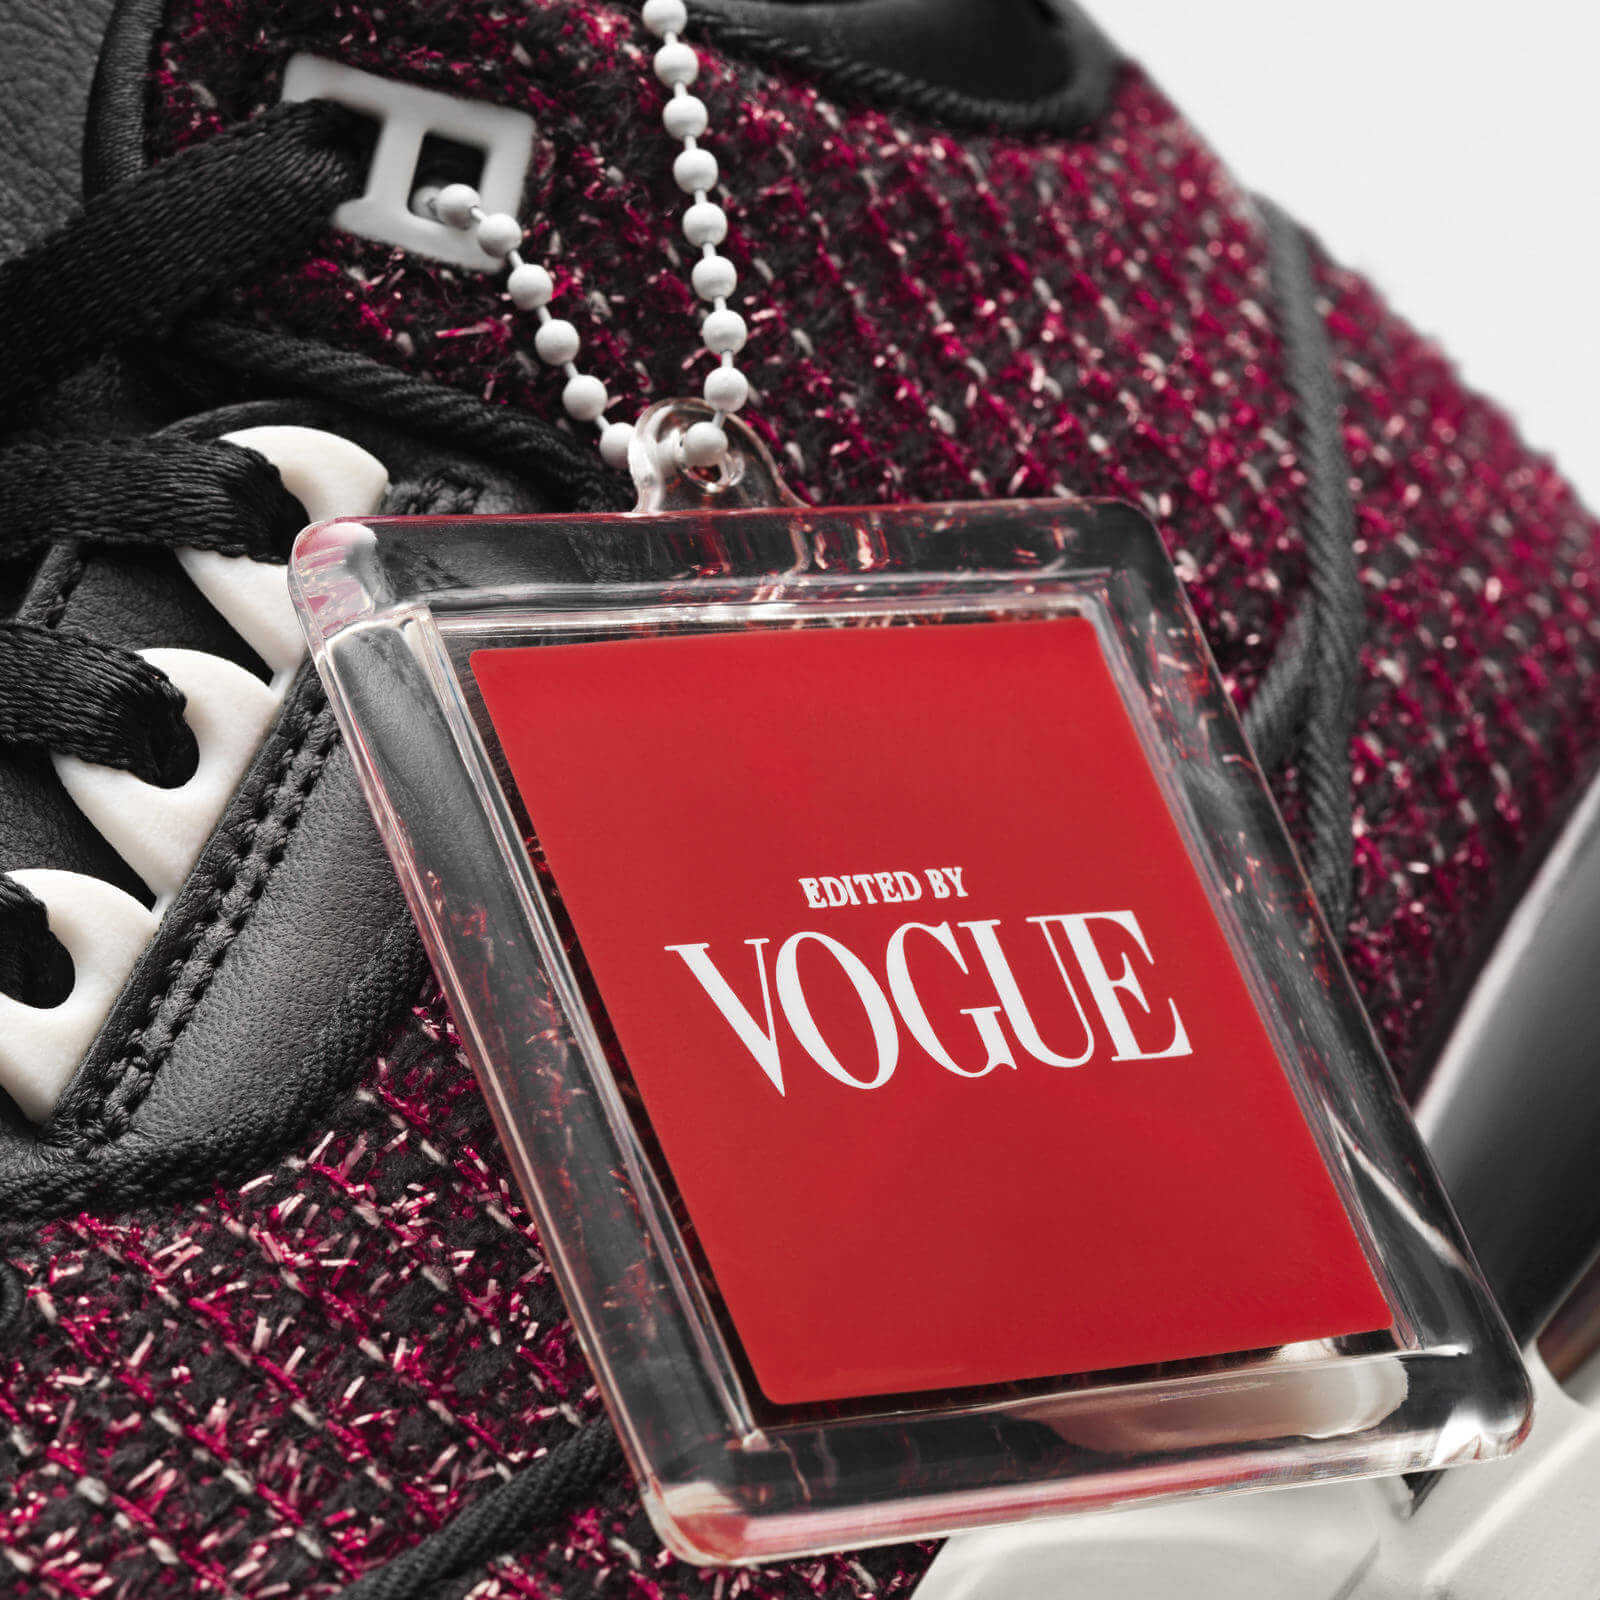 Vogue x Nike by Anna Wintour. Fotografía: Vogue/Nike